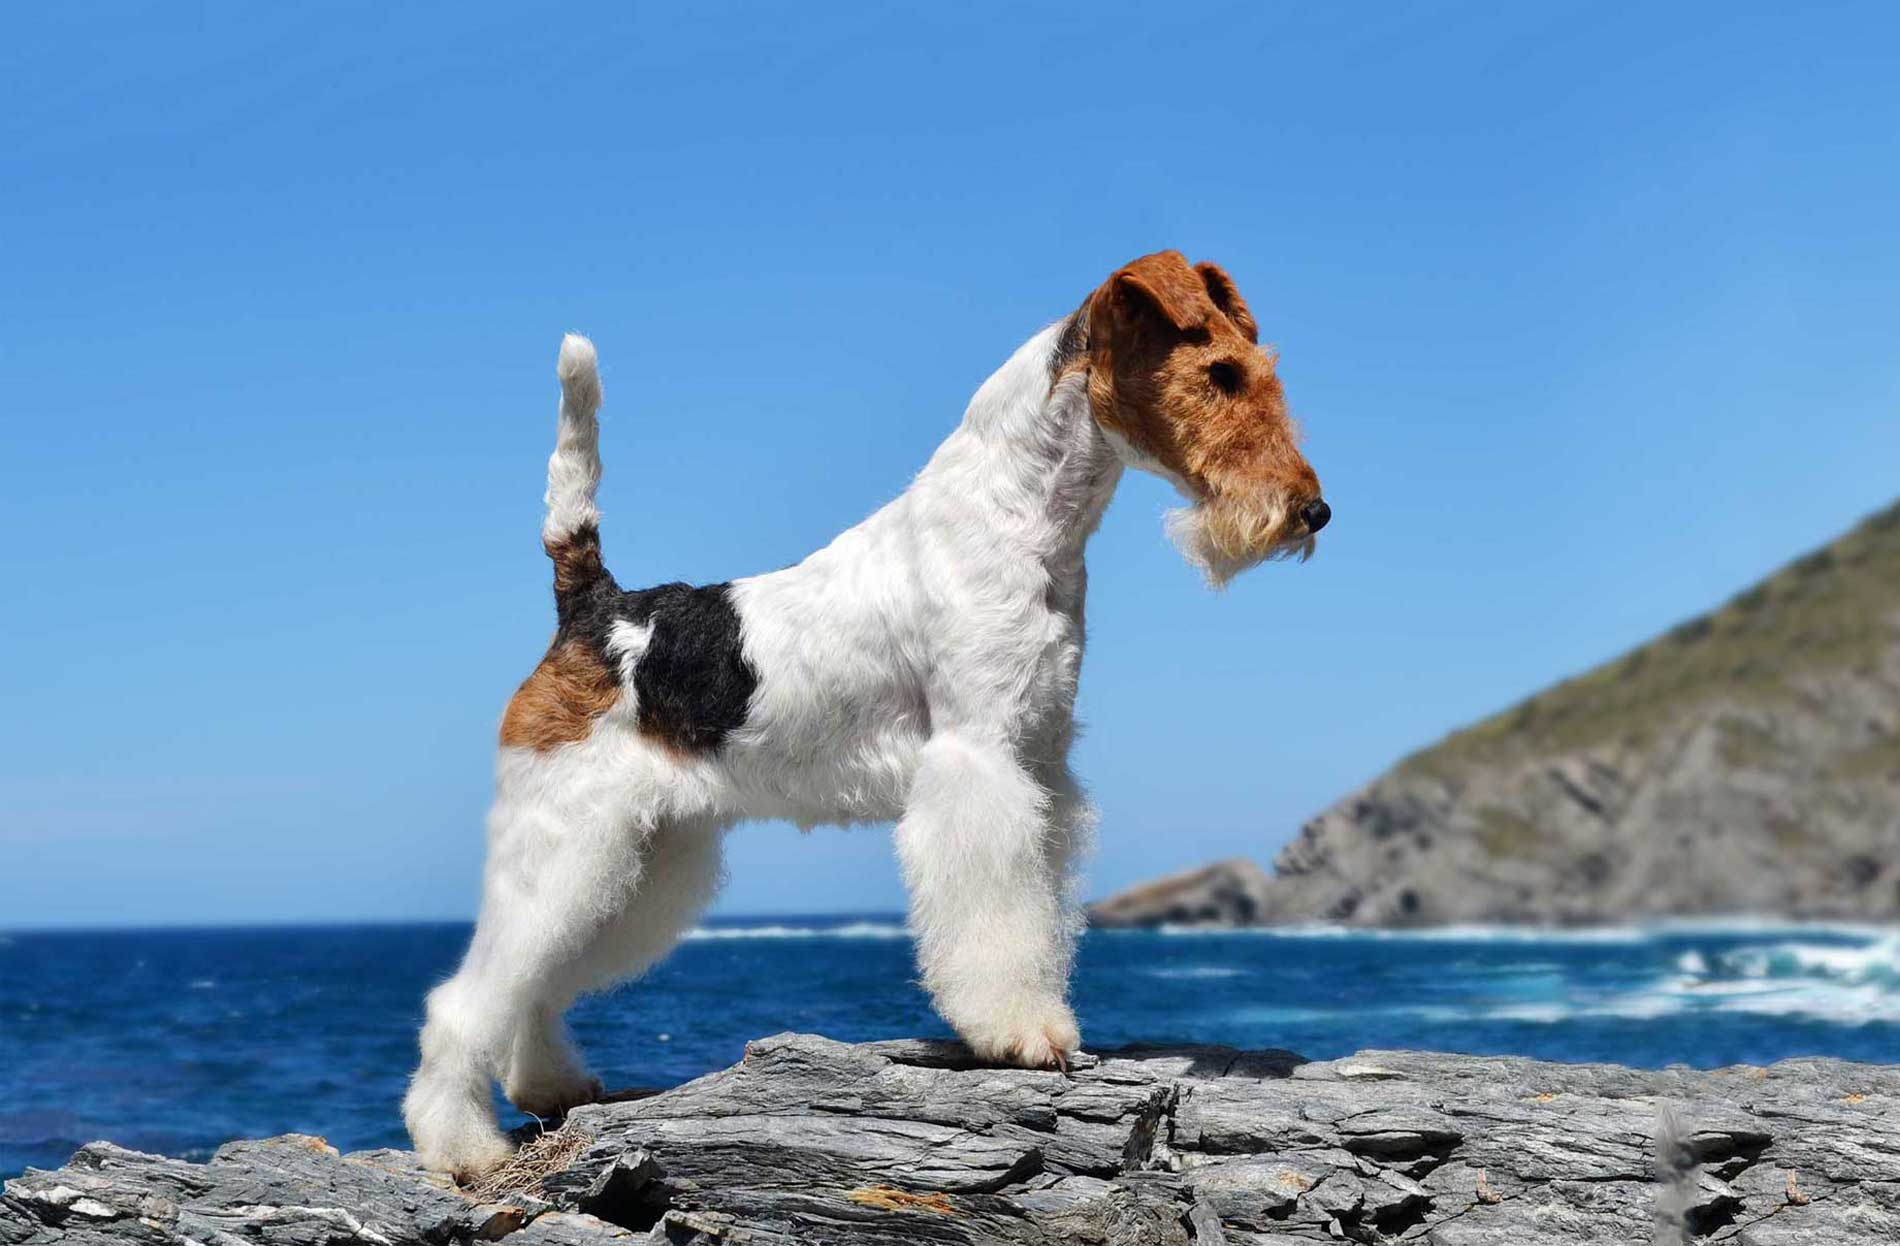 Fox Terrier HD Desktop Wallpapers | 7wallpapers.net